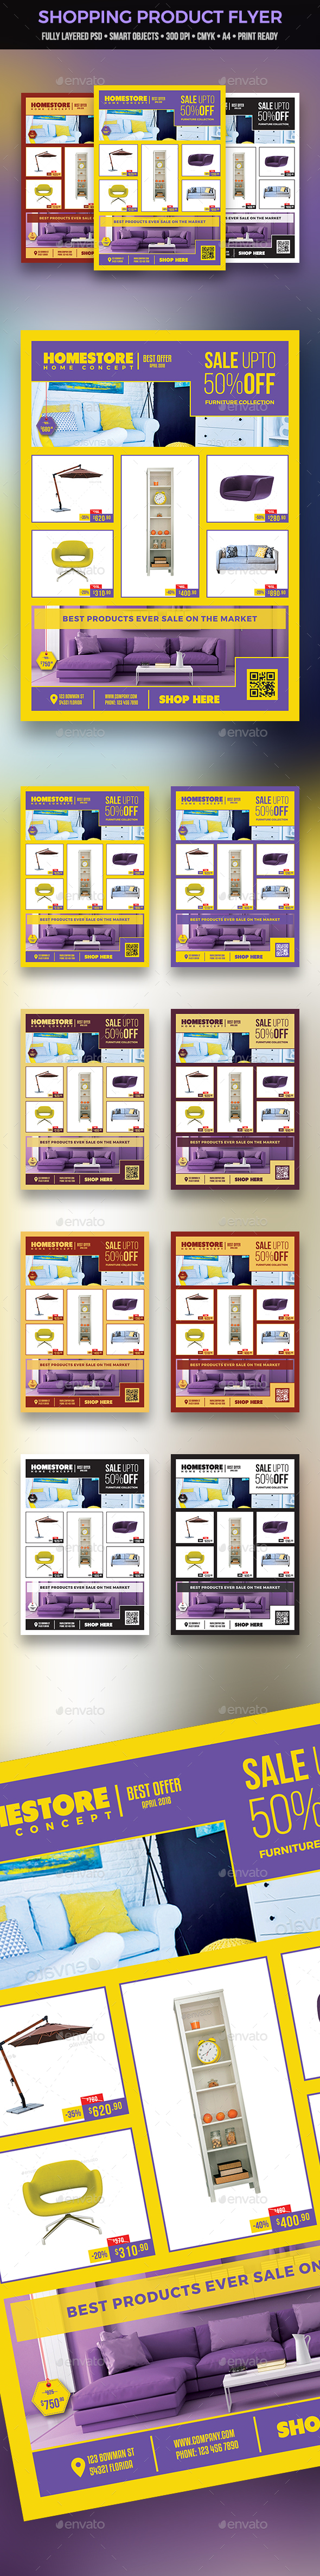 Shopping Product Flyer - Commerce Flyers